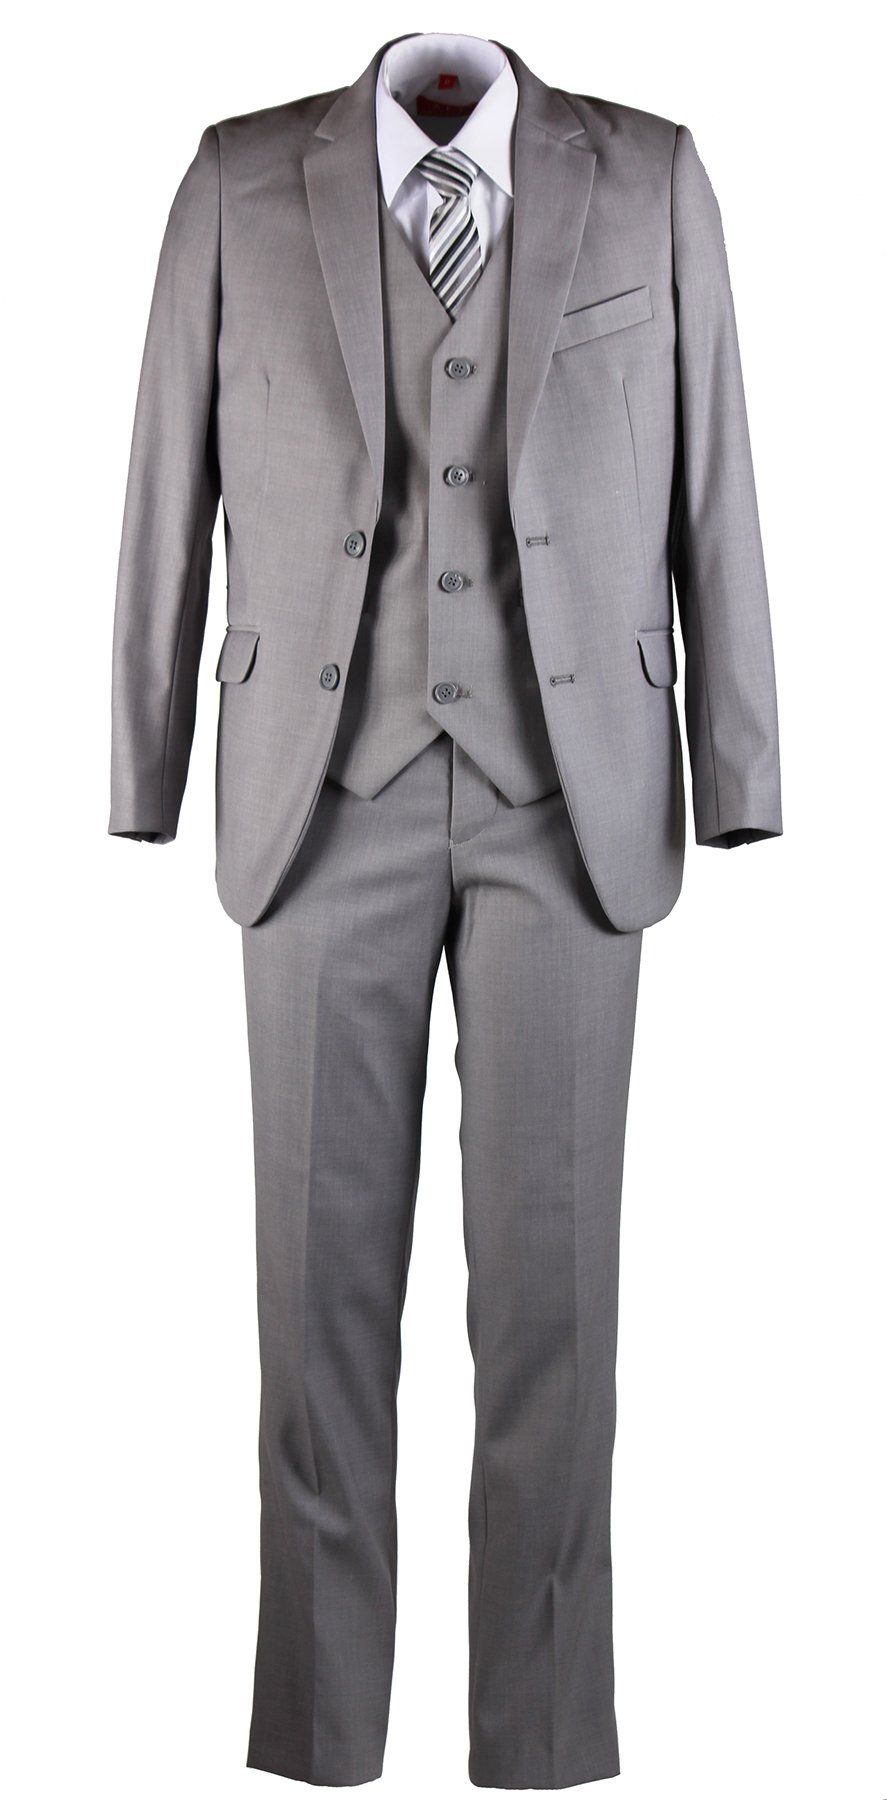 Tuxgear Boys Slim Fit Light Grey Suit In Toddlers To Boys Sizing (7 Boys)